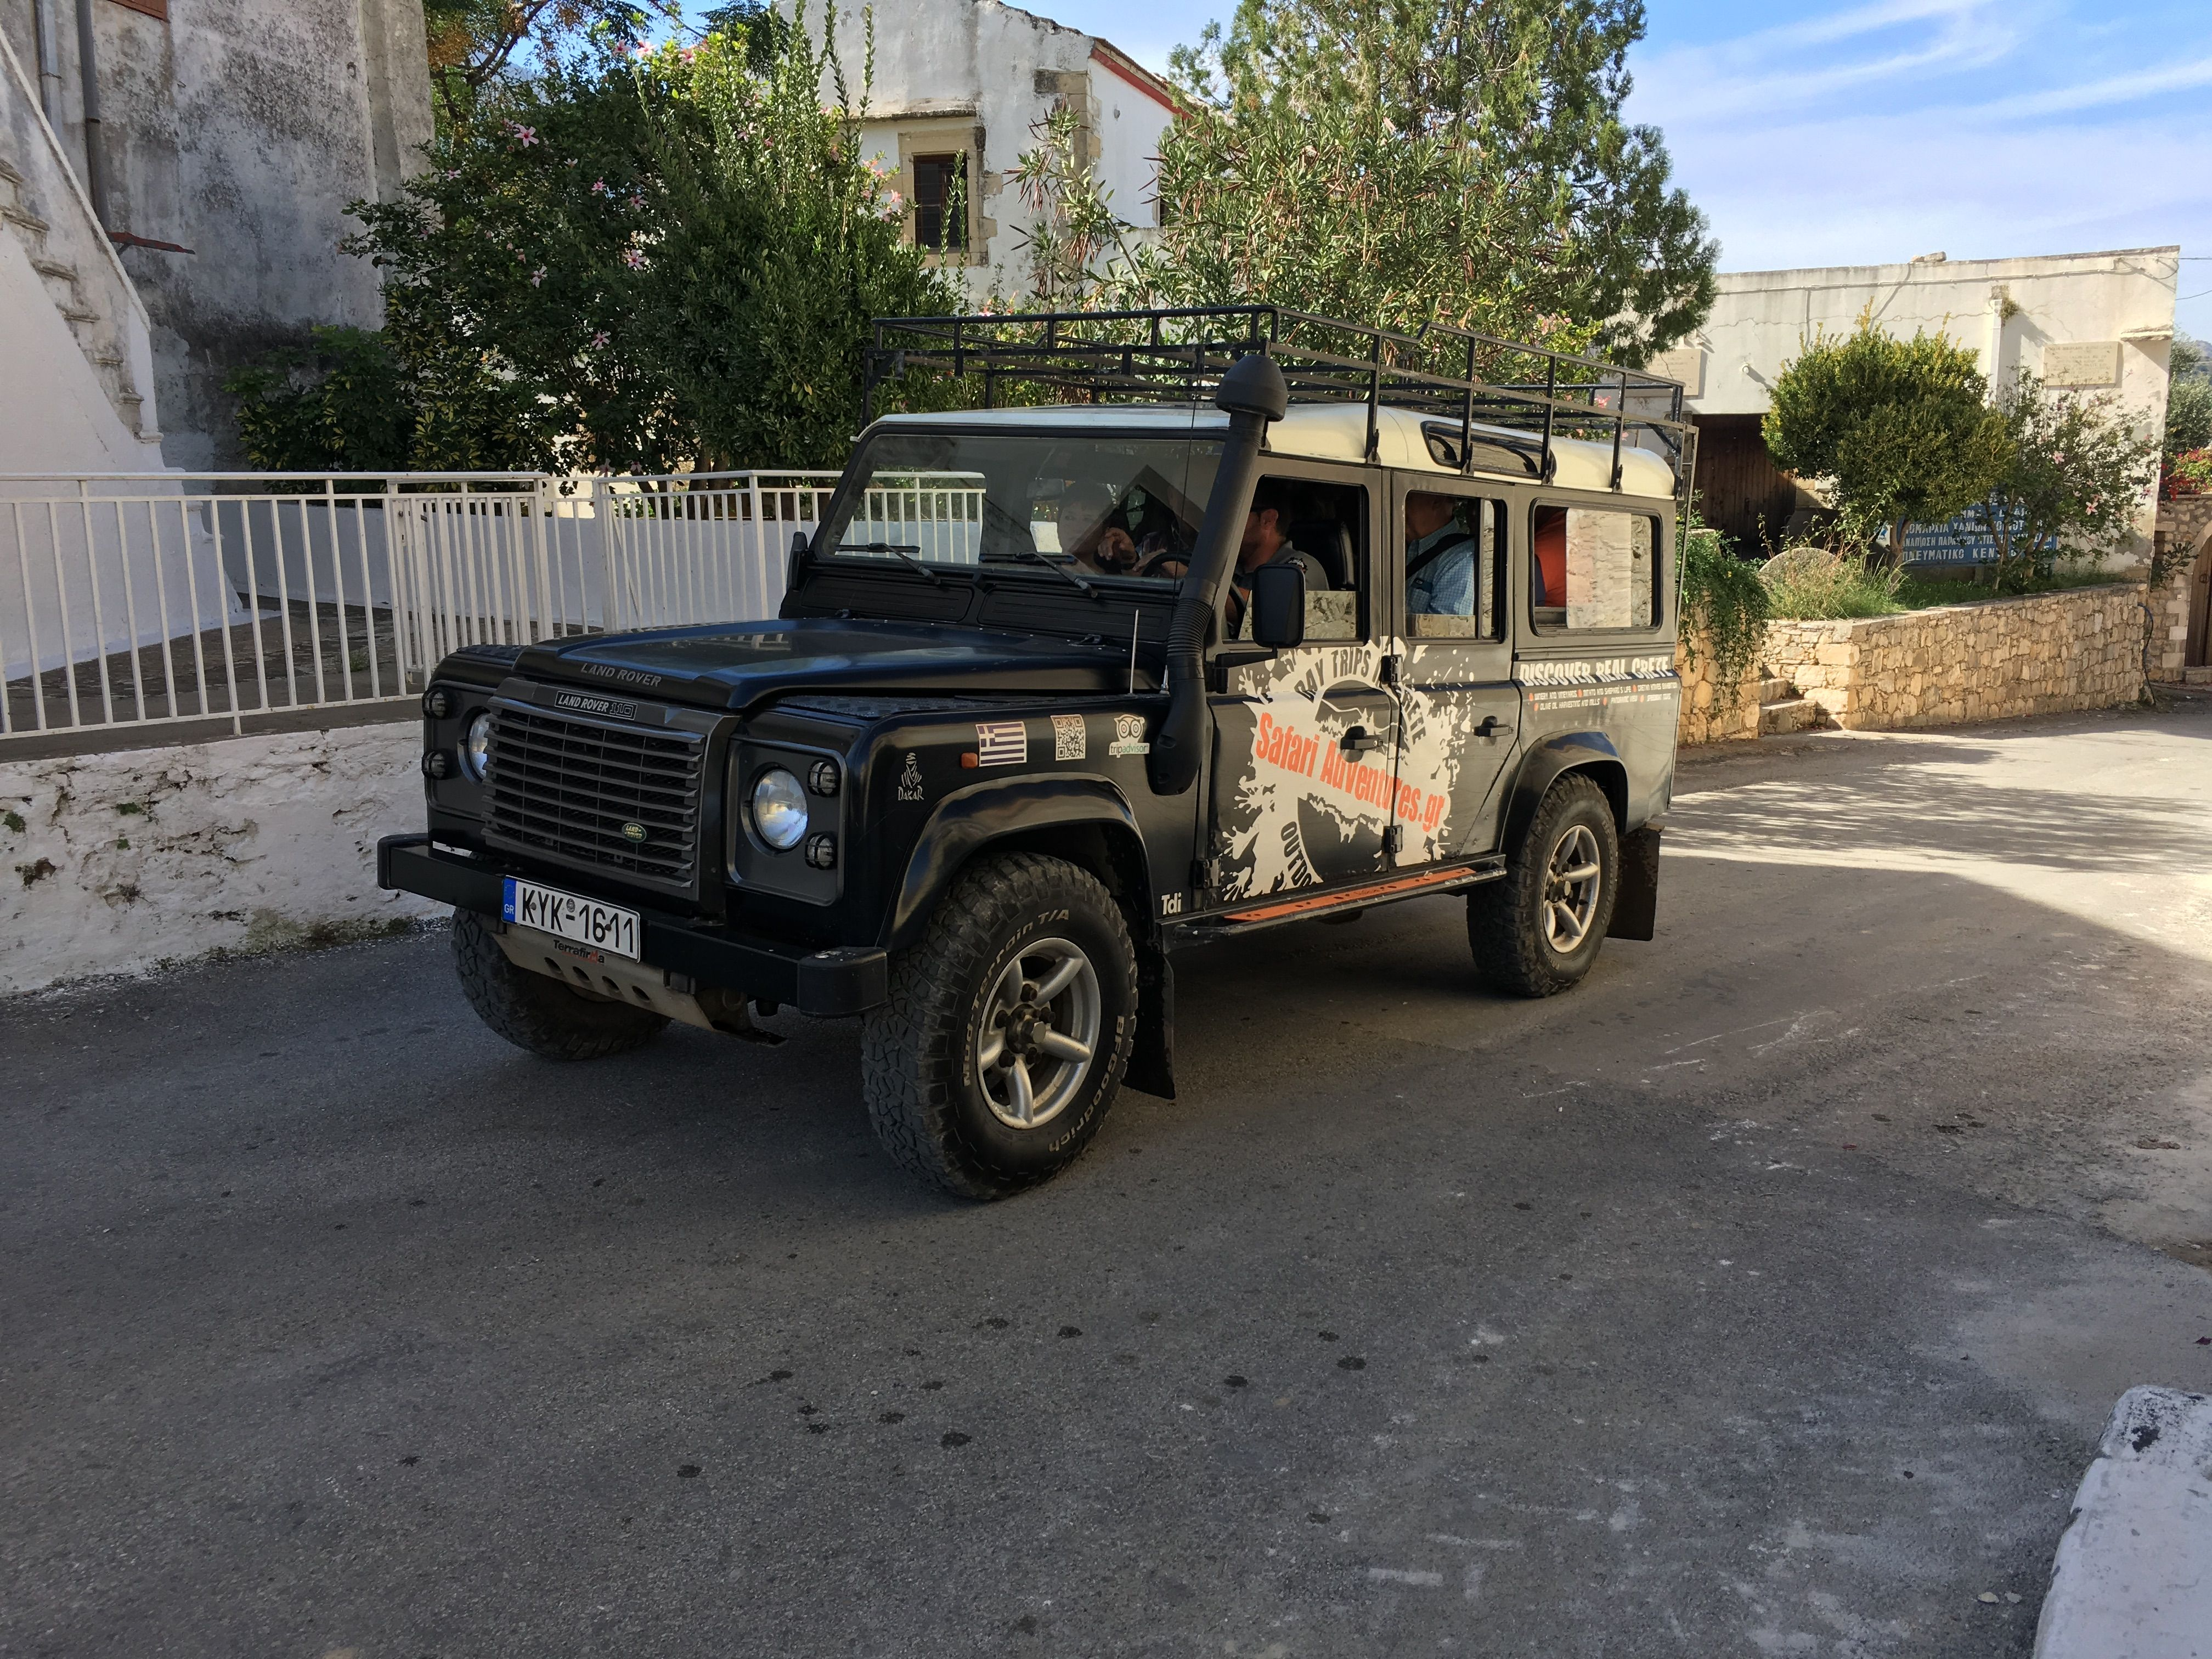 Safari Adventures Land Rover Defender 110 with guide Driver